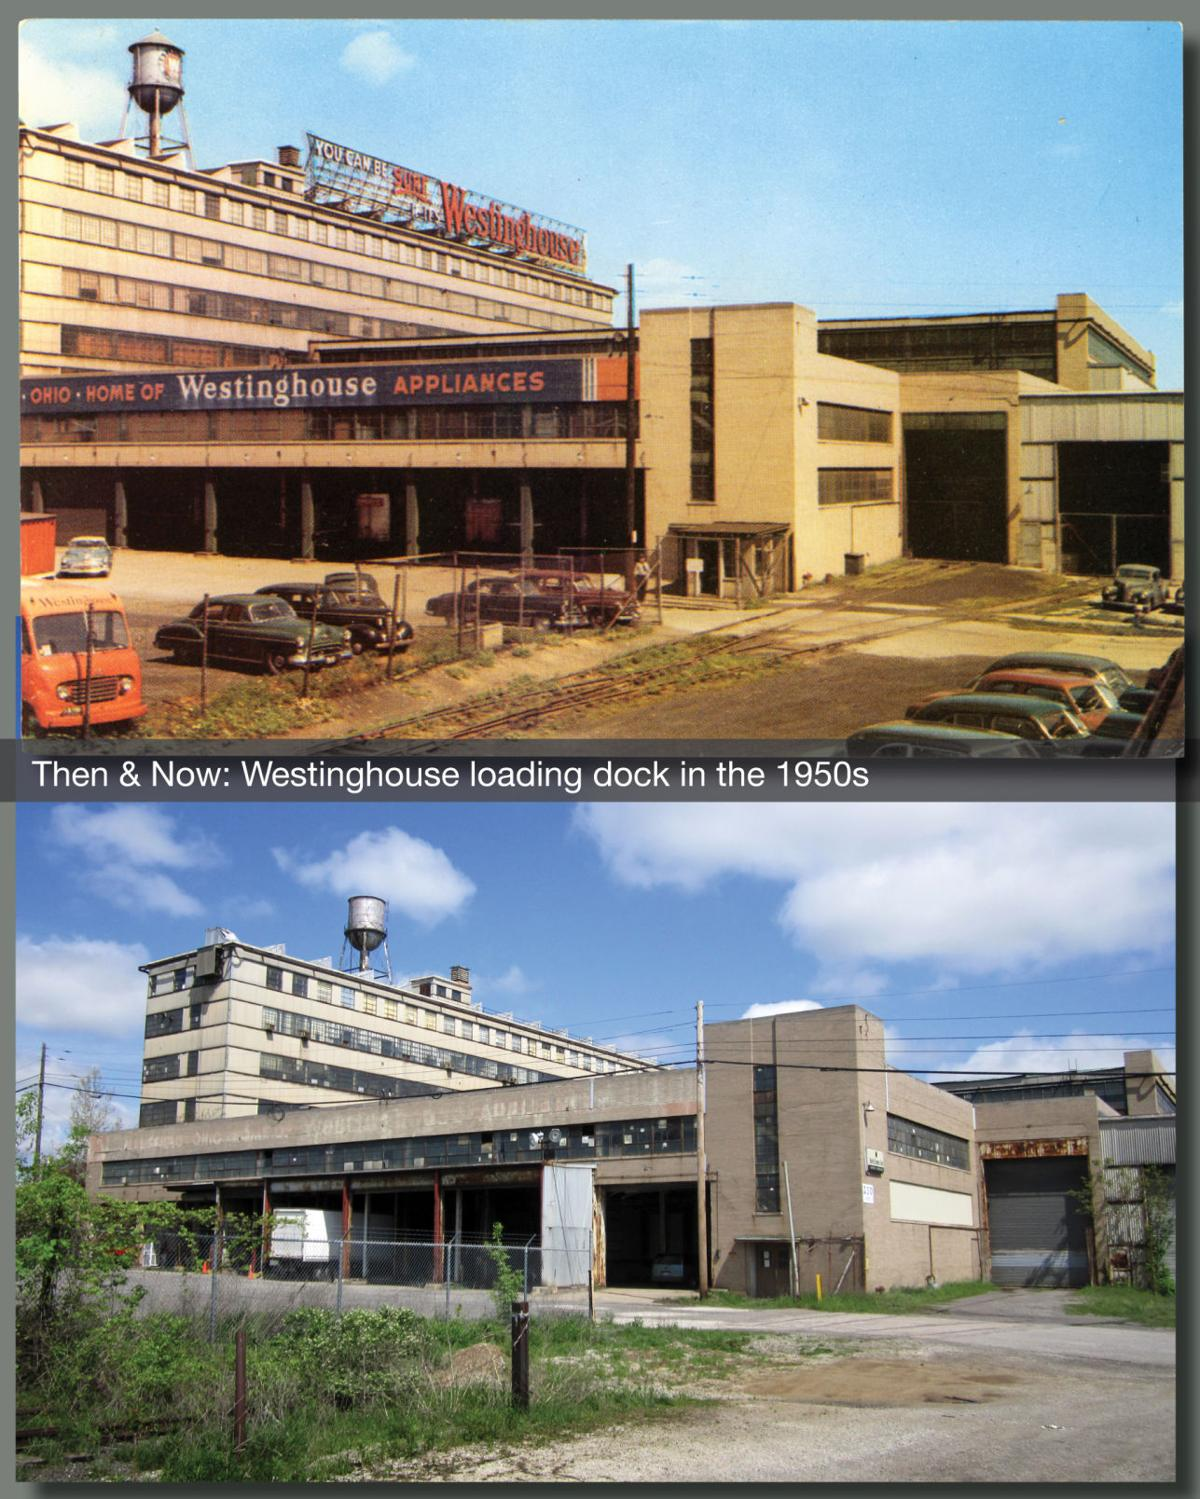 Then & Now: Westinghouse dock 1950s